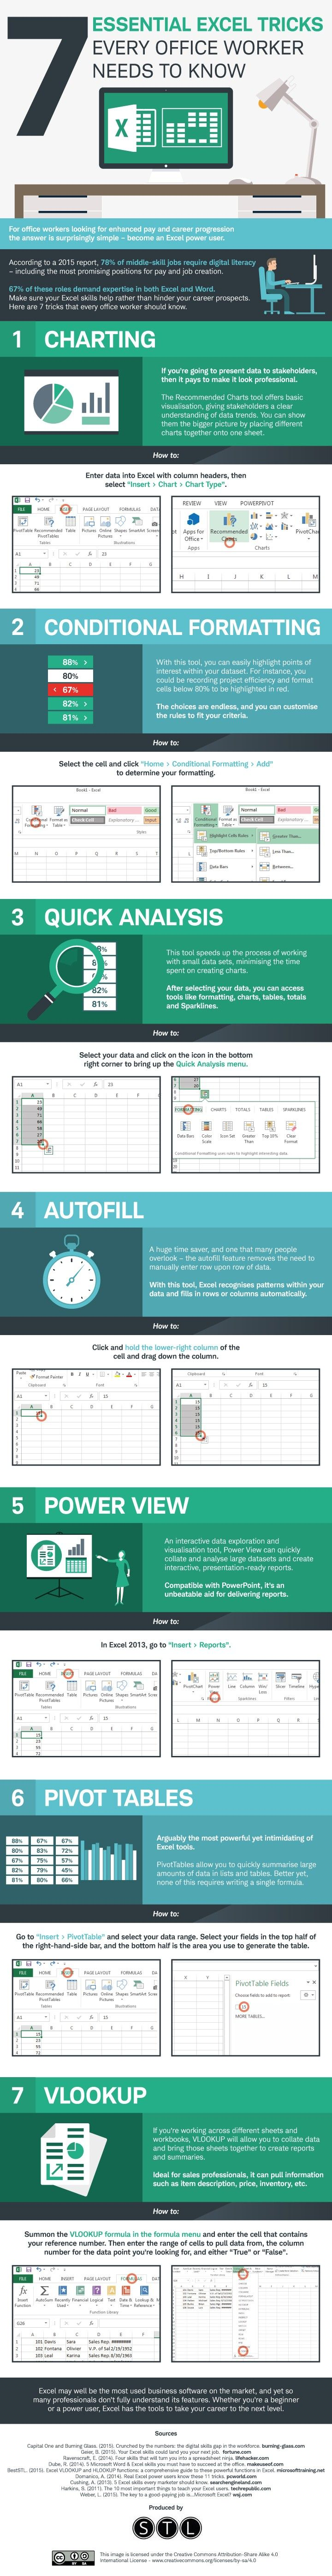 seven-essential-excel-tricks-every-office-worker-needs-to-know